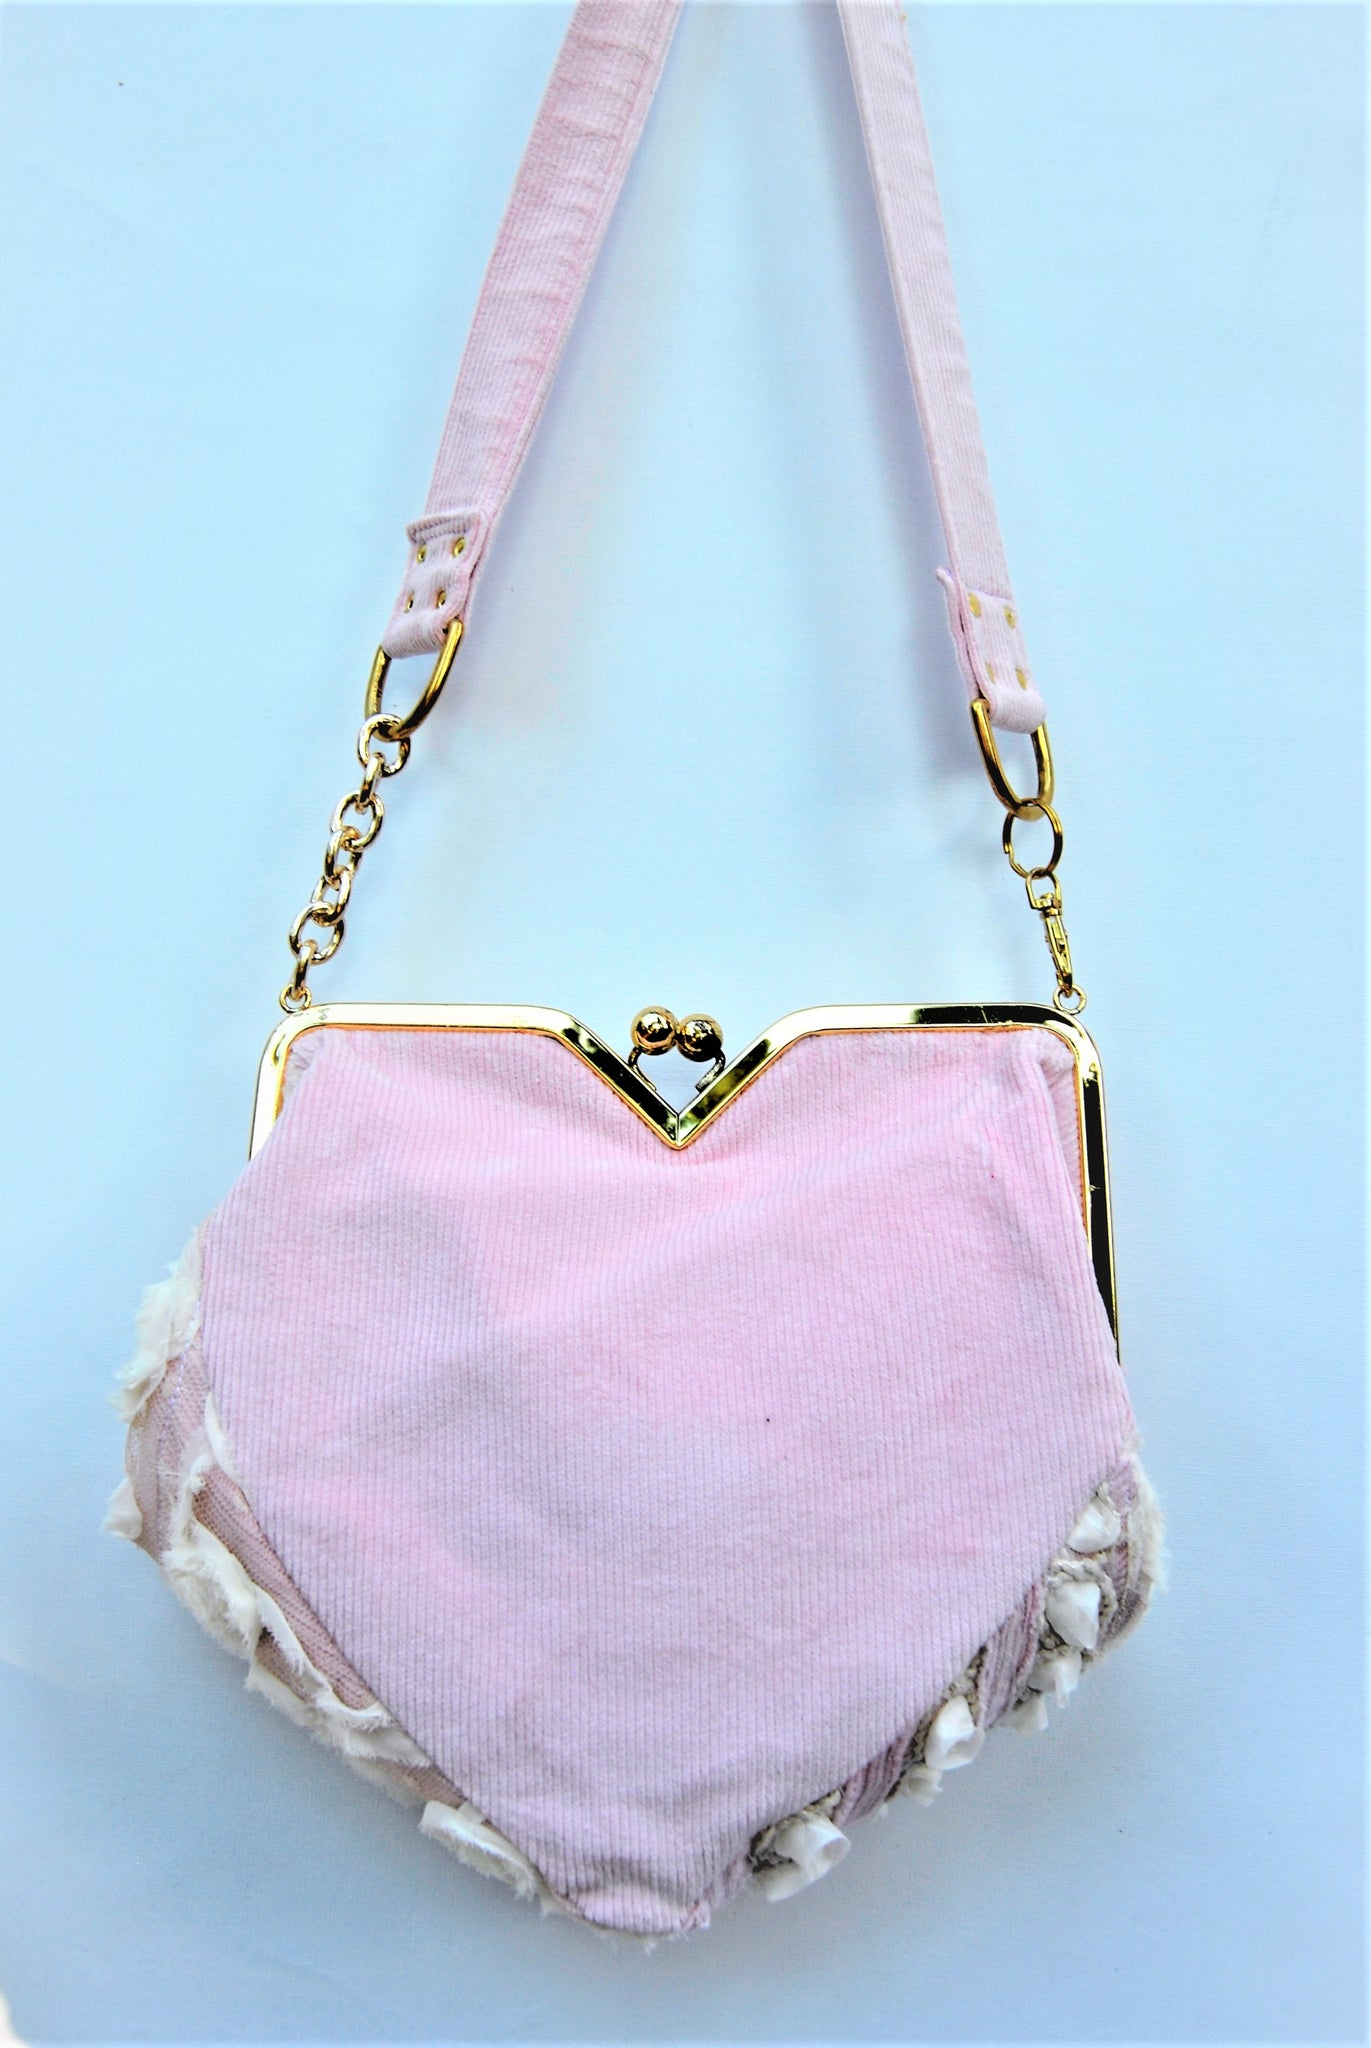 5) Rosegarden bag